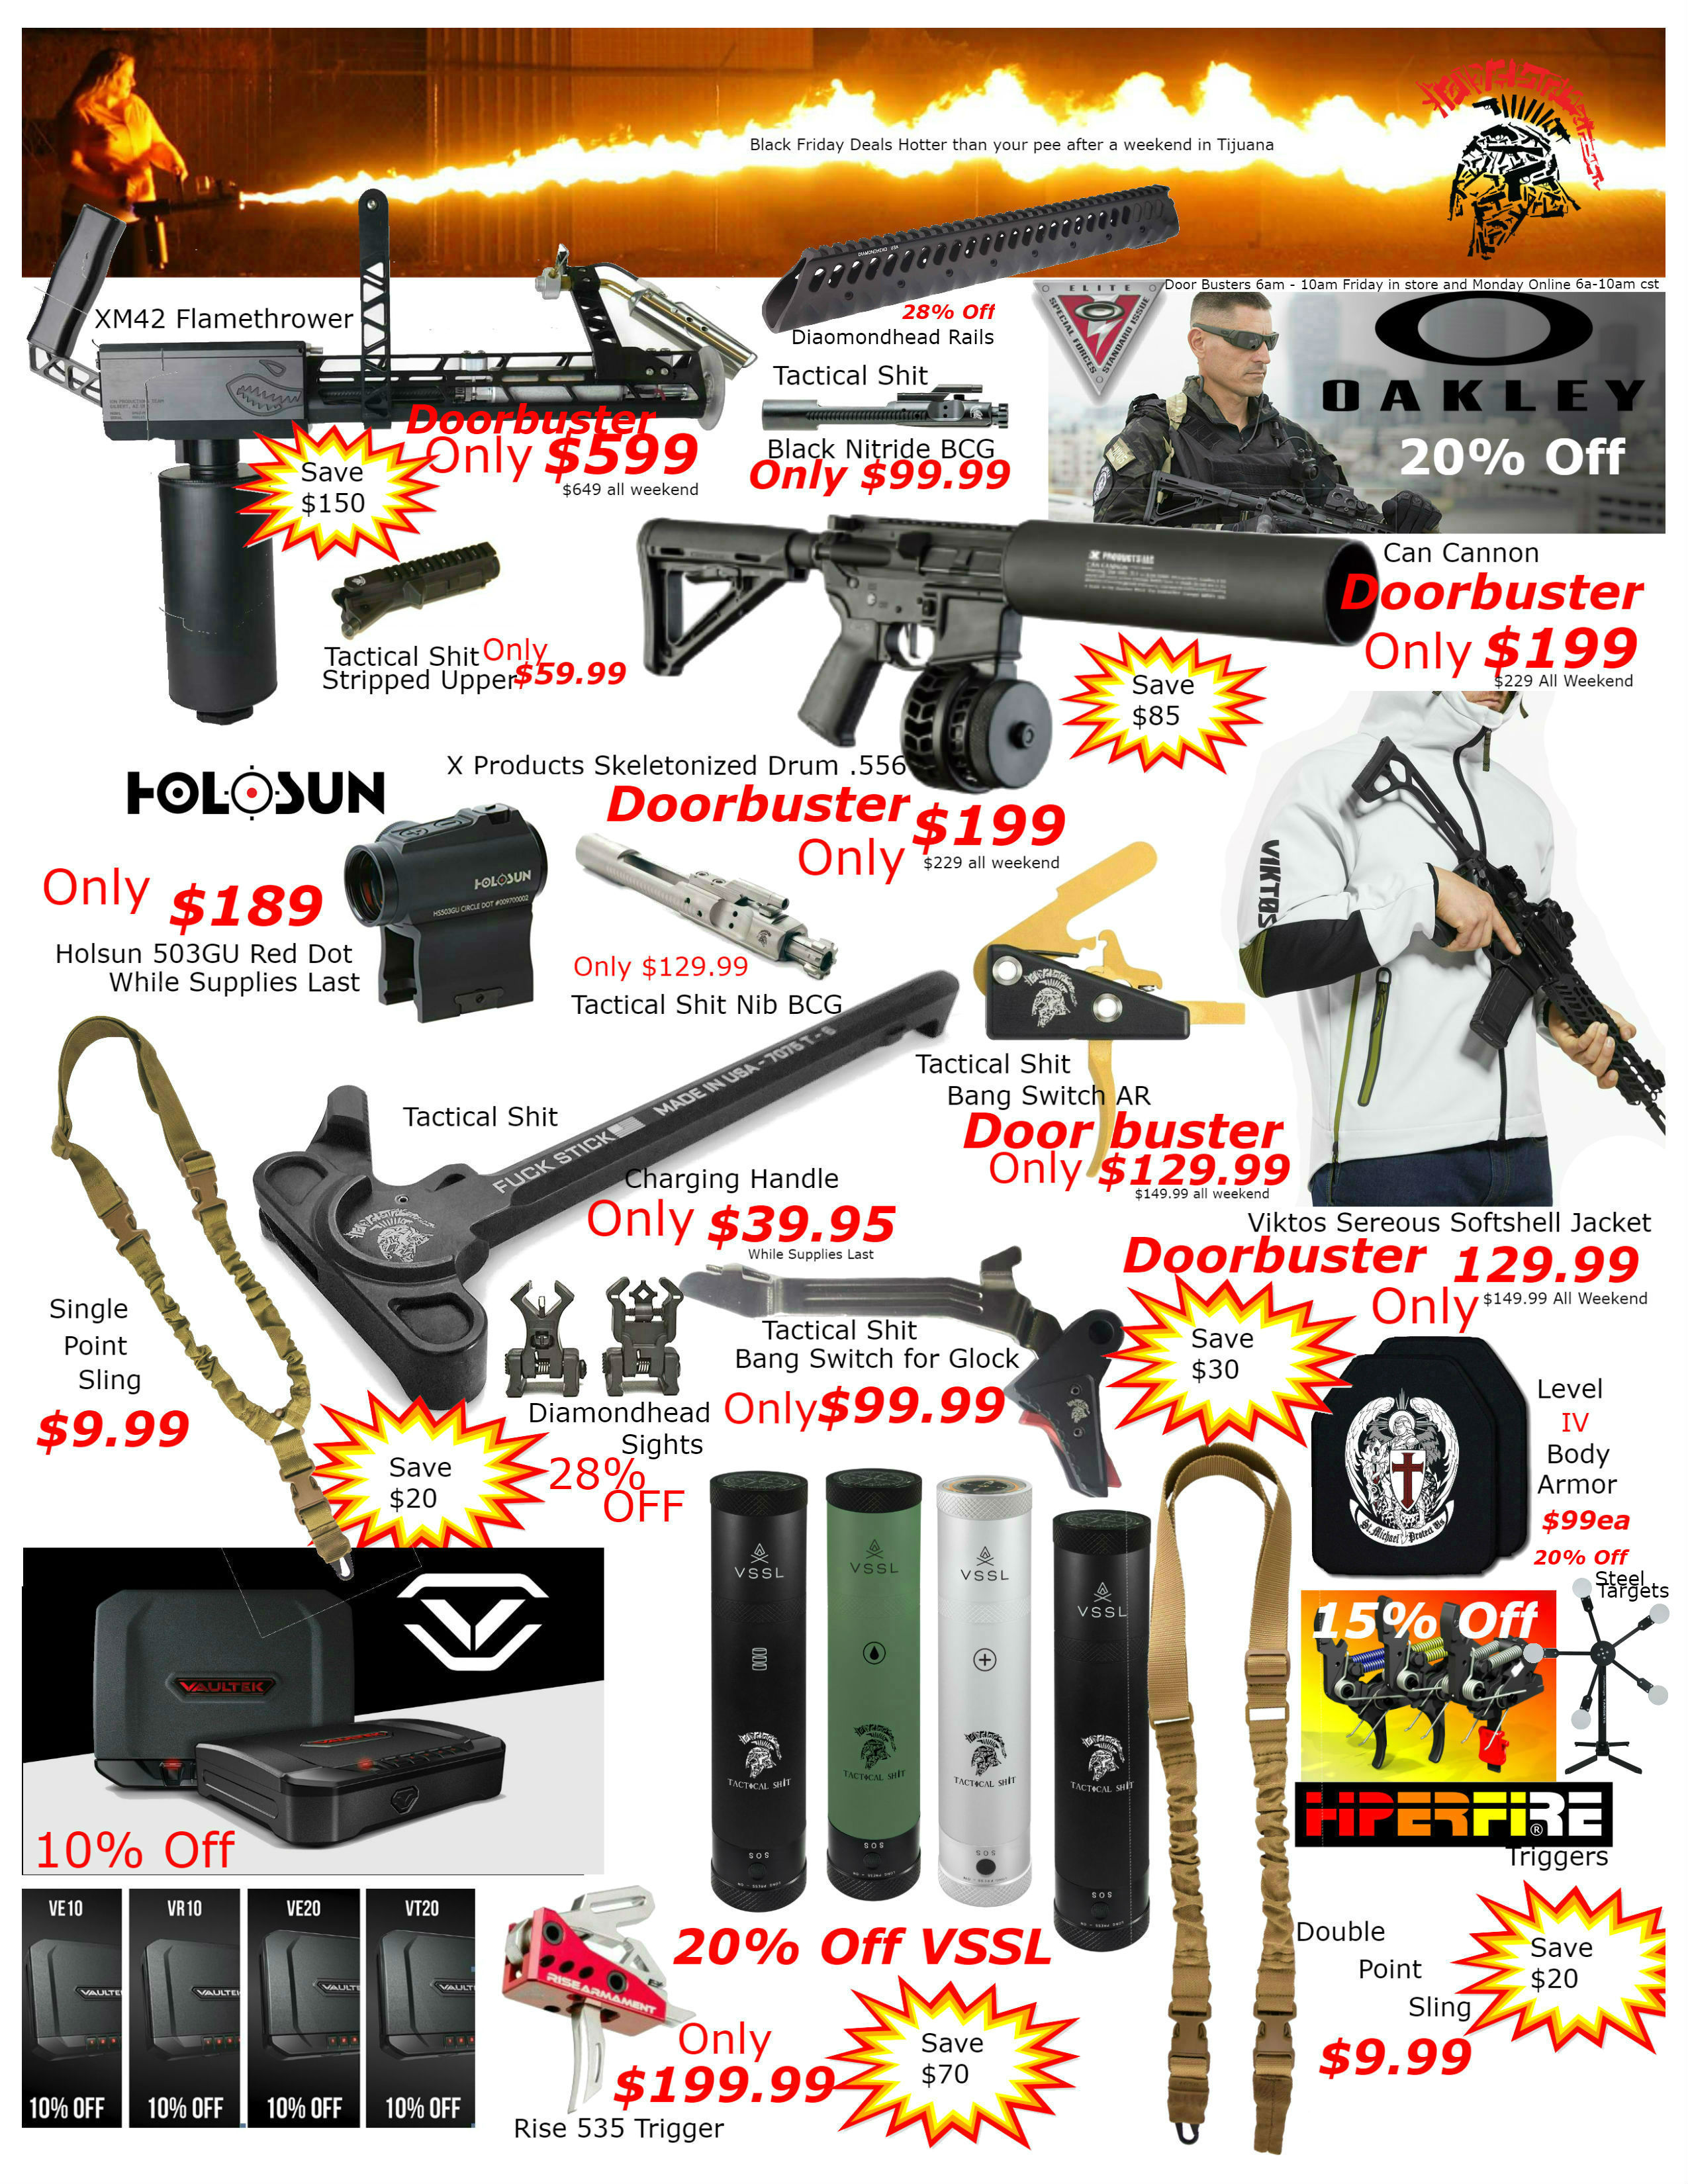 Black Friday Cyber Monday Flyer Final Side 1 Rev4 Tactical Sh T